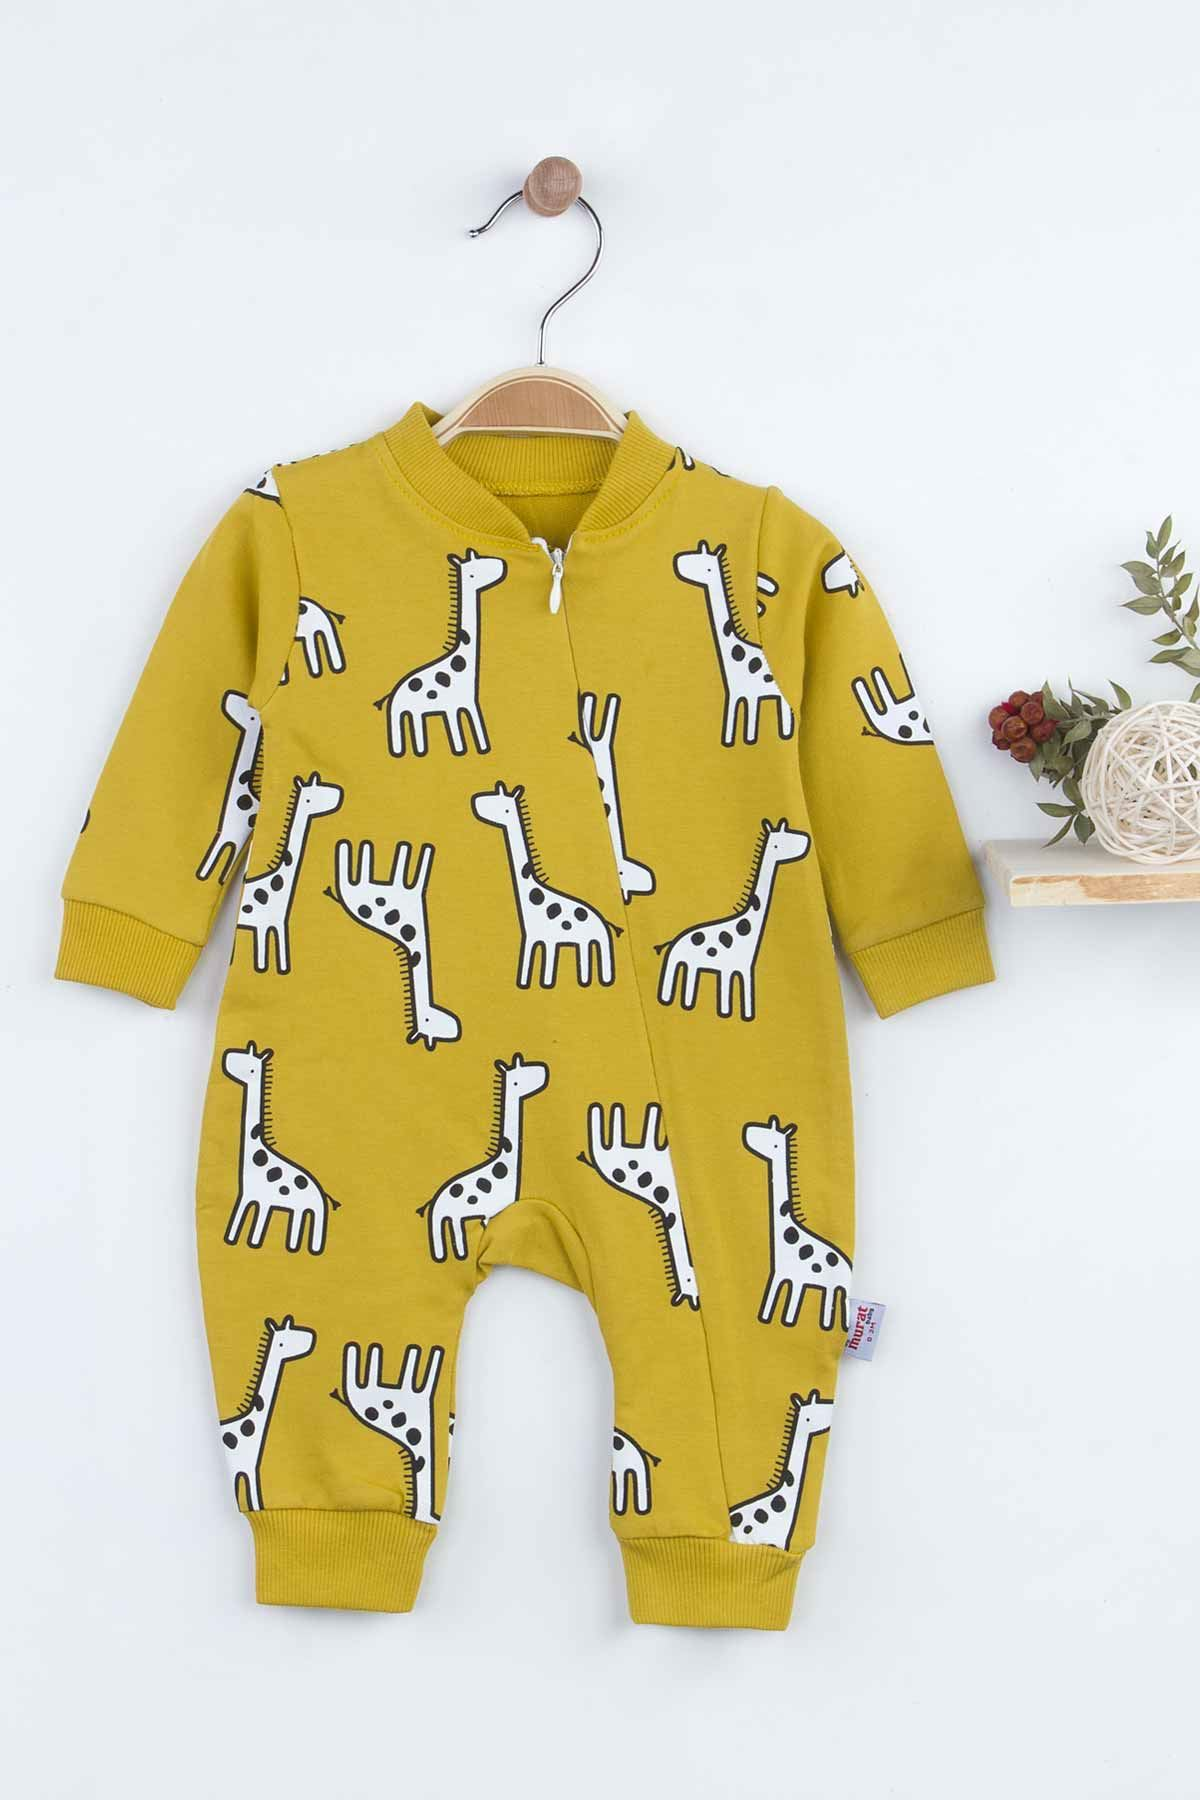 Yellow Giraffe Baby Boy Rompers Fashion 2021 New Season Style Babies Clothes Outfit Cotton Comfortable Underwear for Boys Baby Model